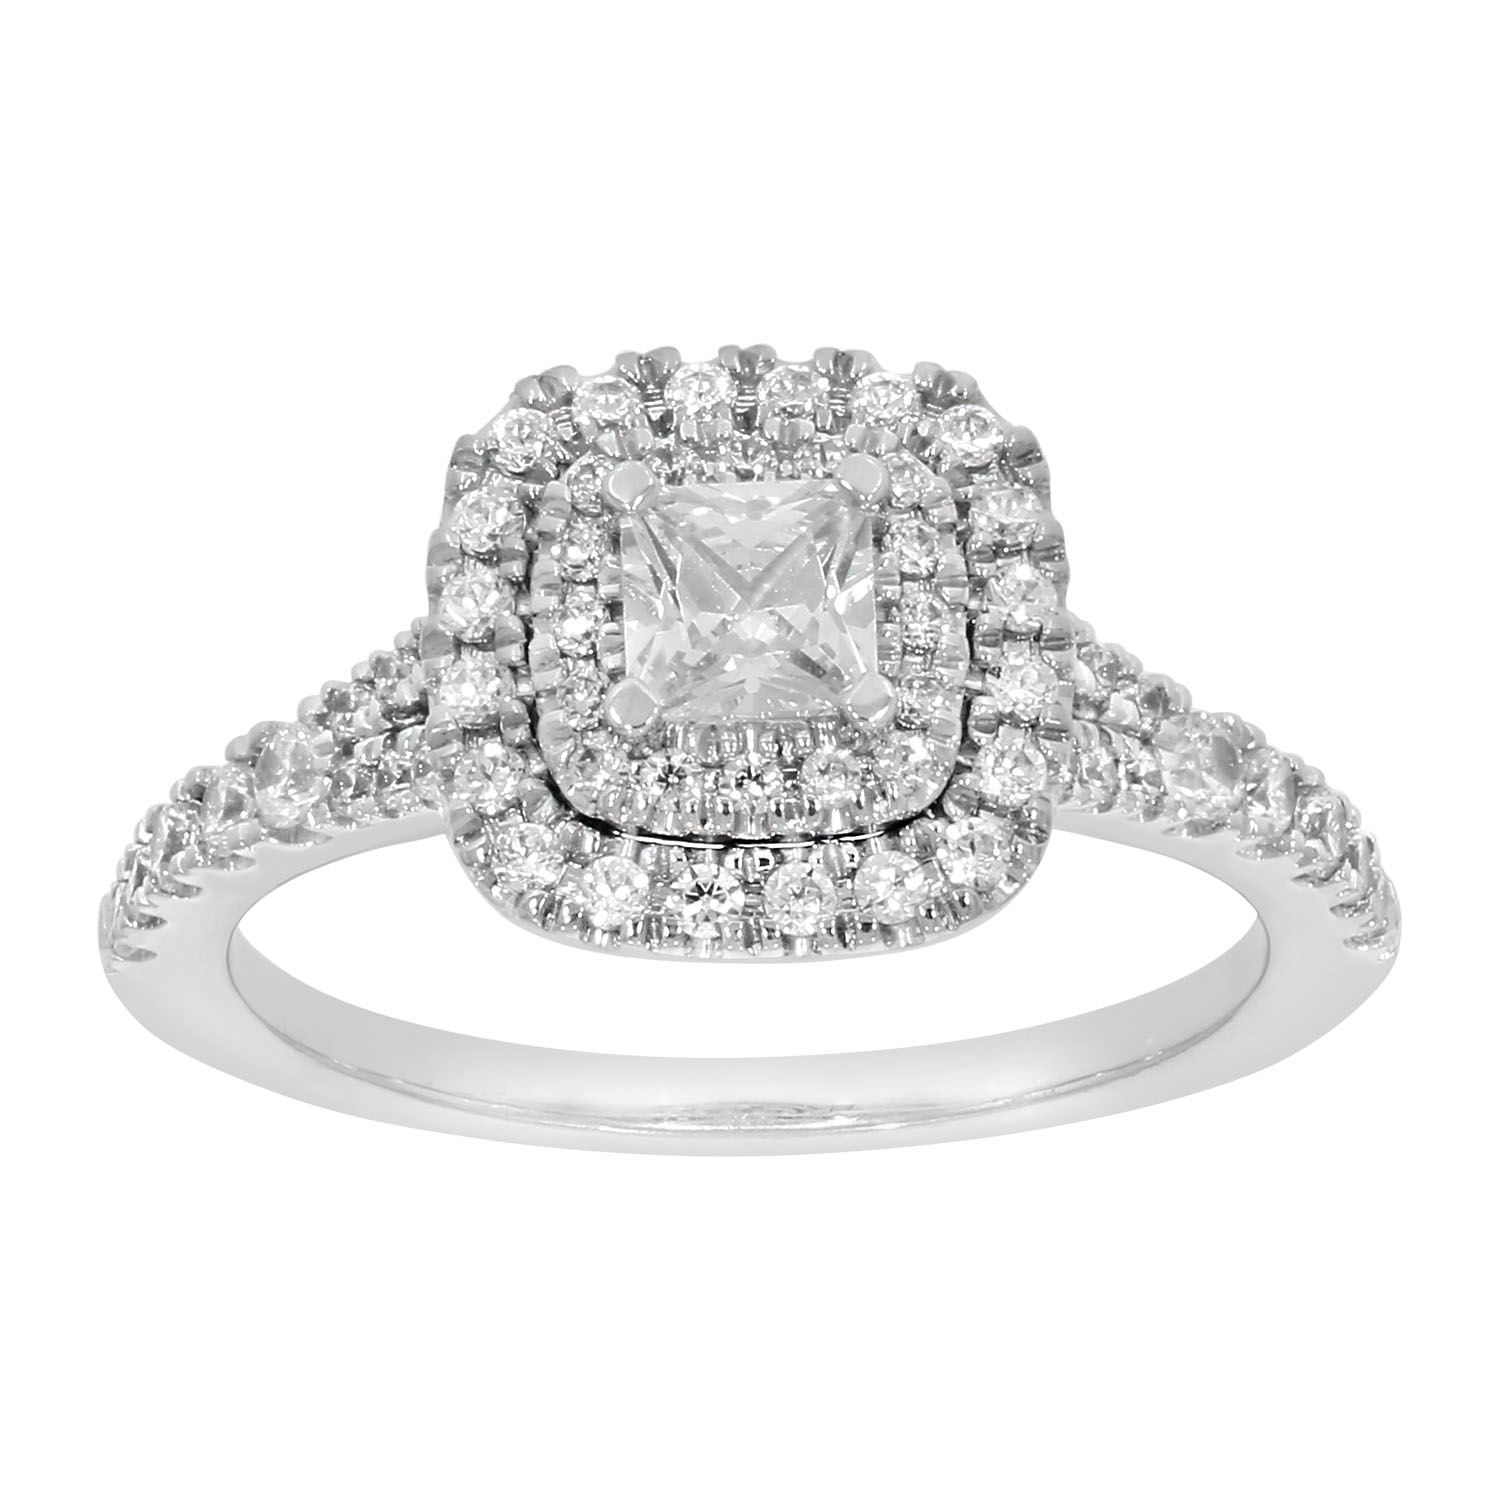 9ct White Gold 1 Carat Princess Diamond Solitaire Ring with Brilliant Halo and Sides